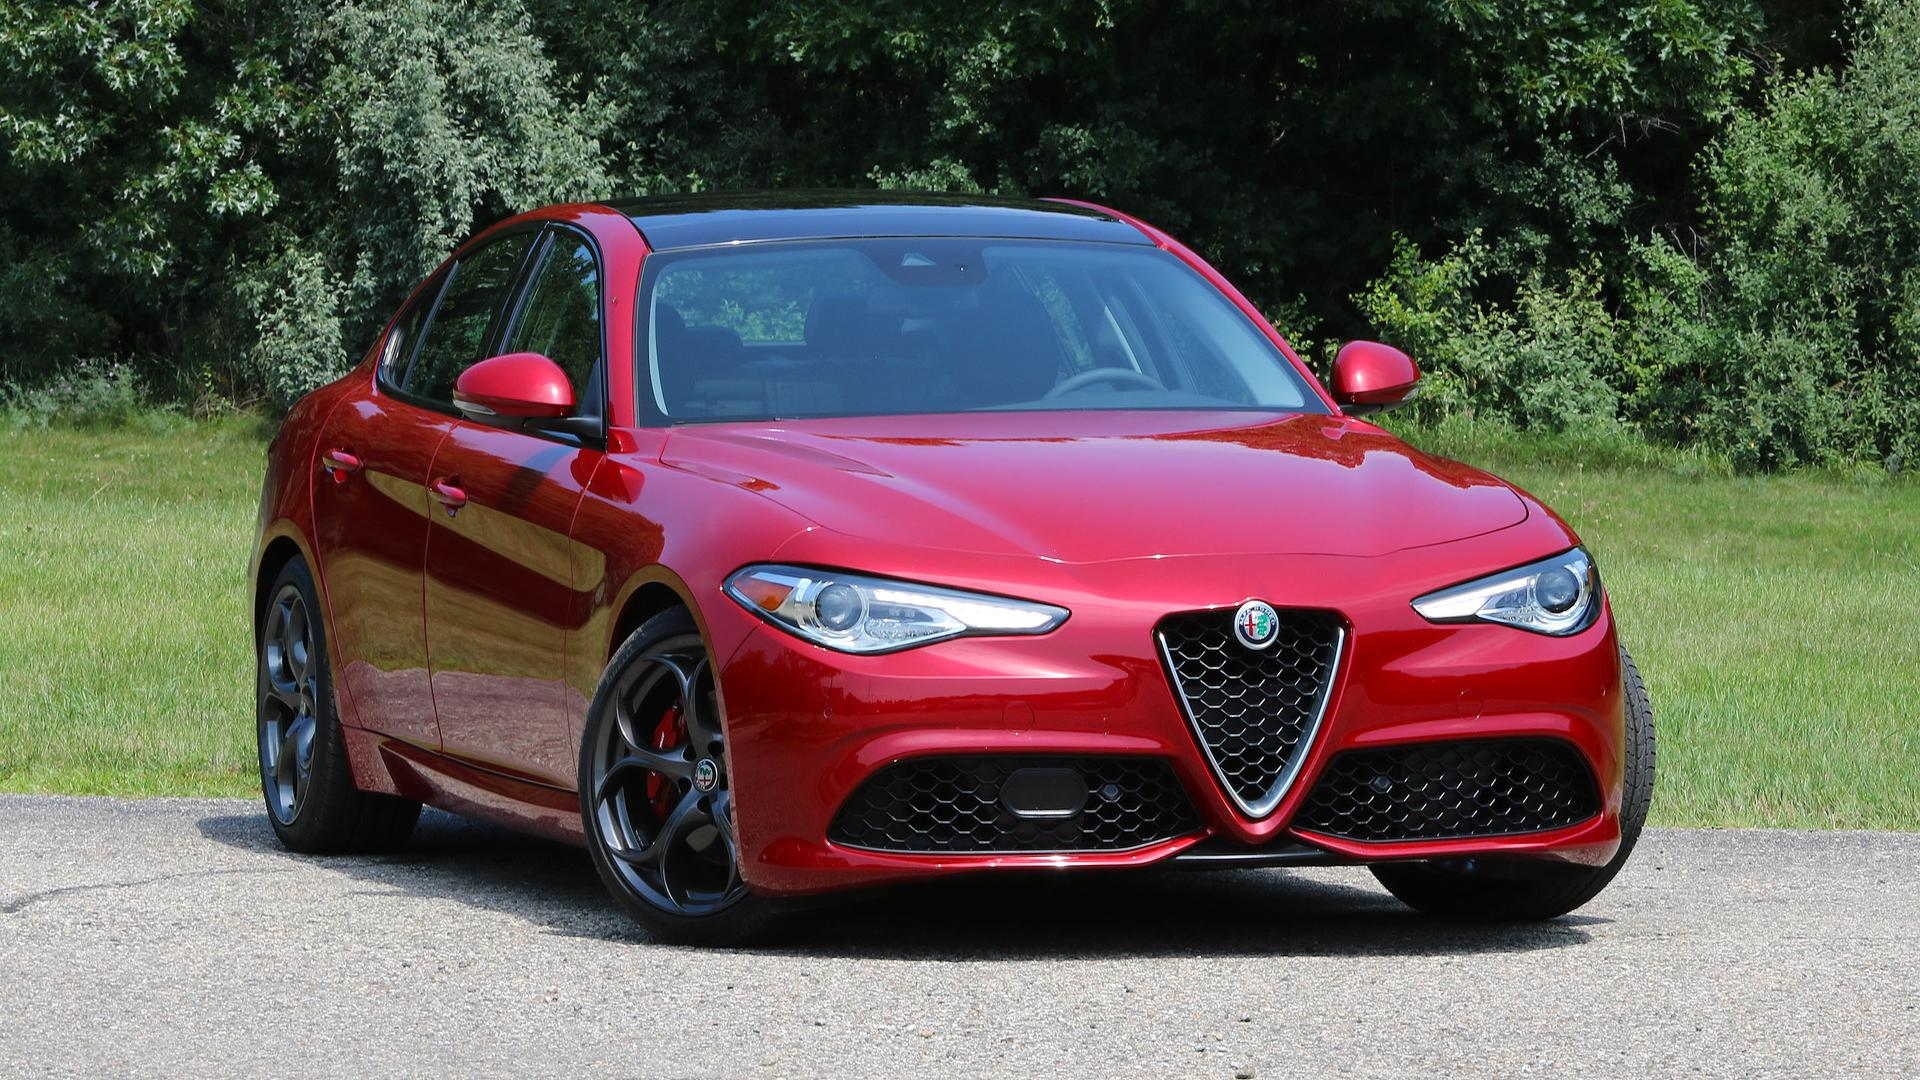 Alfa Romeo Giulia 0 60 >> 2017 Alfa Romeo Giulia Review Racy Even Without The